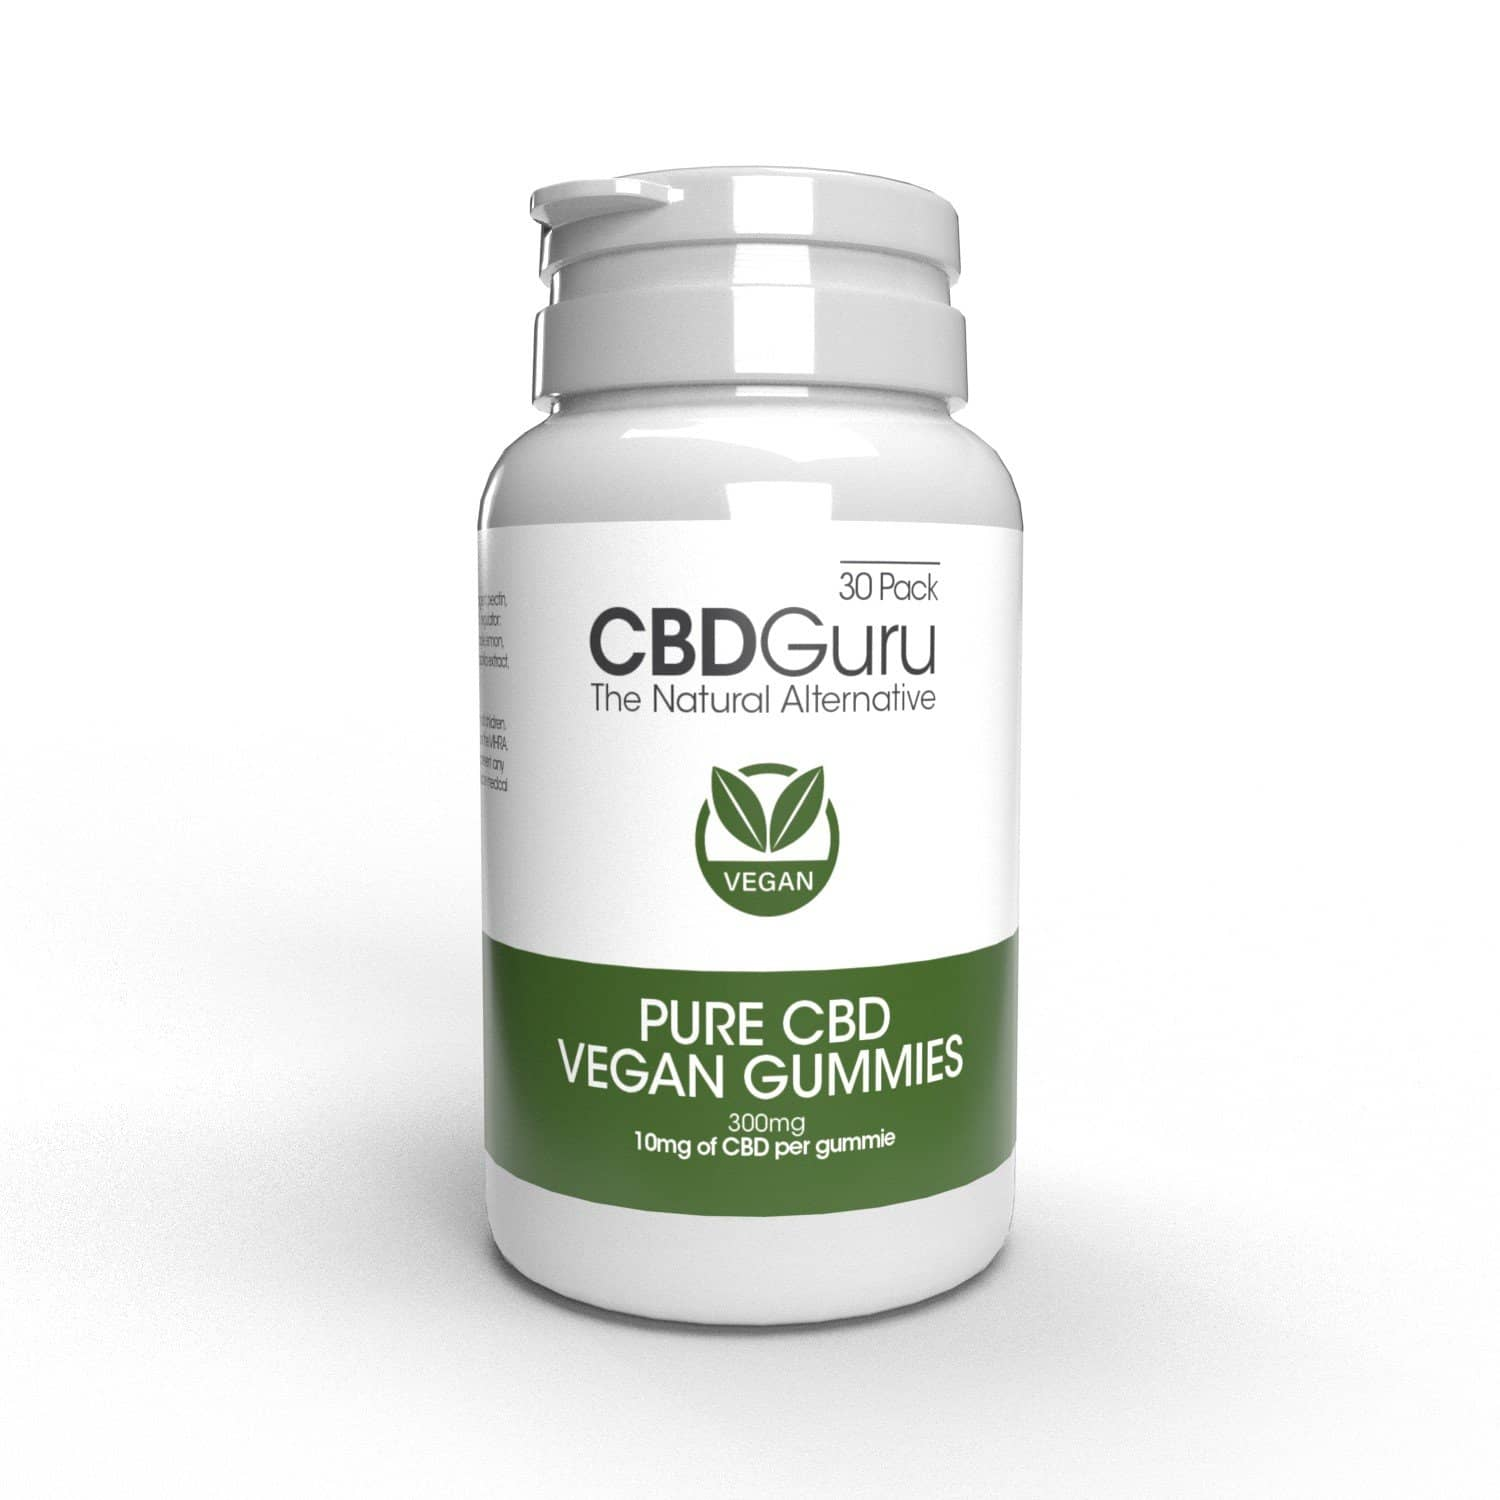 Vegan CBD Gummies 20mg (30 pack)